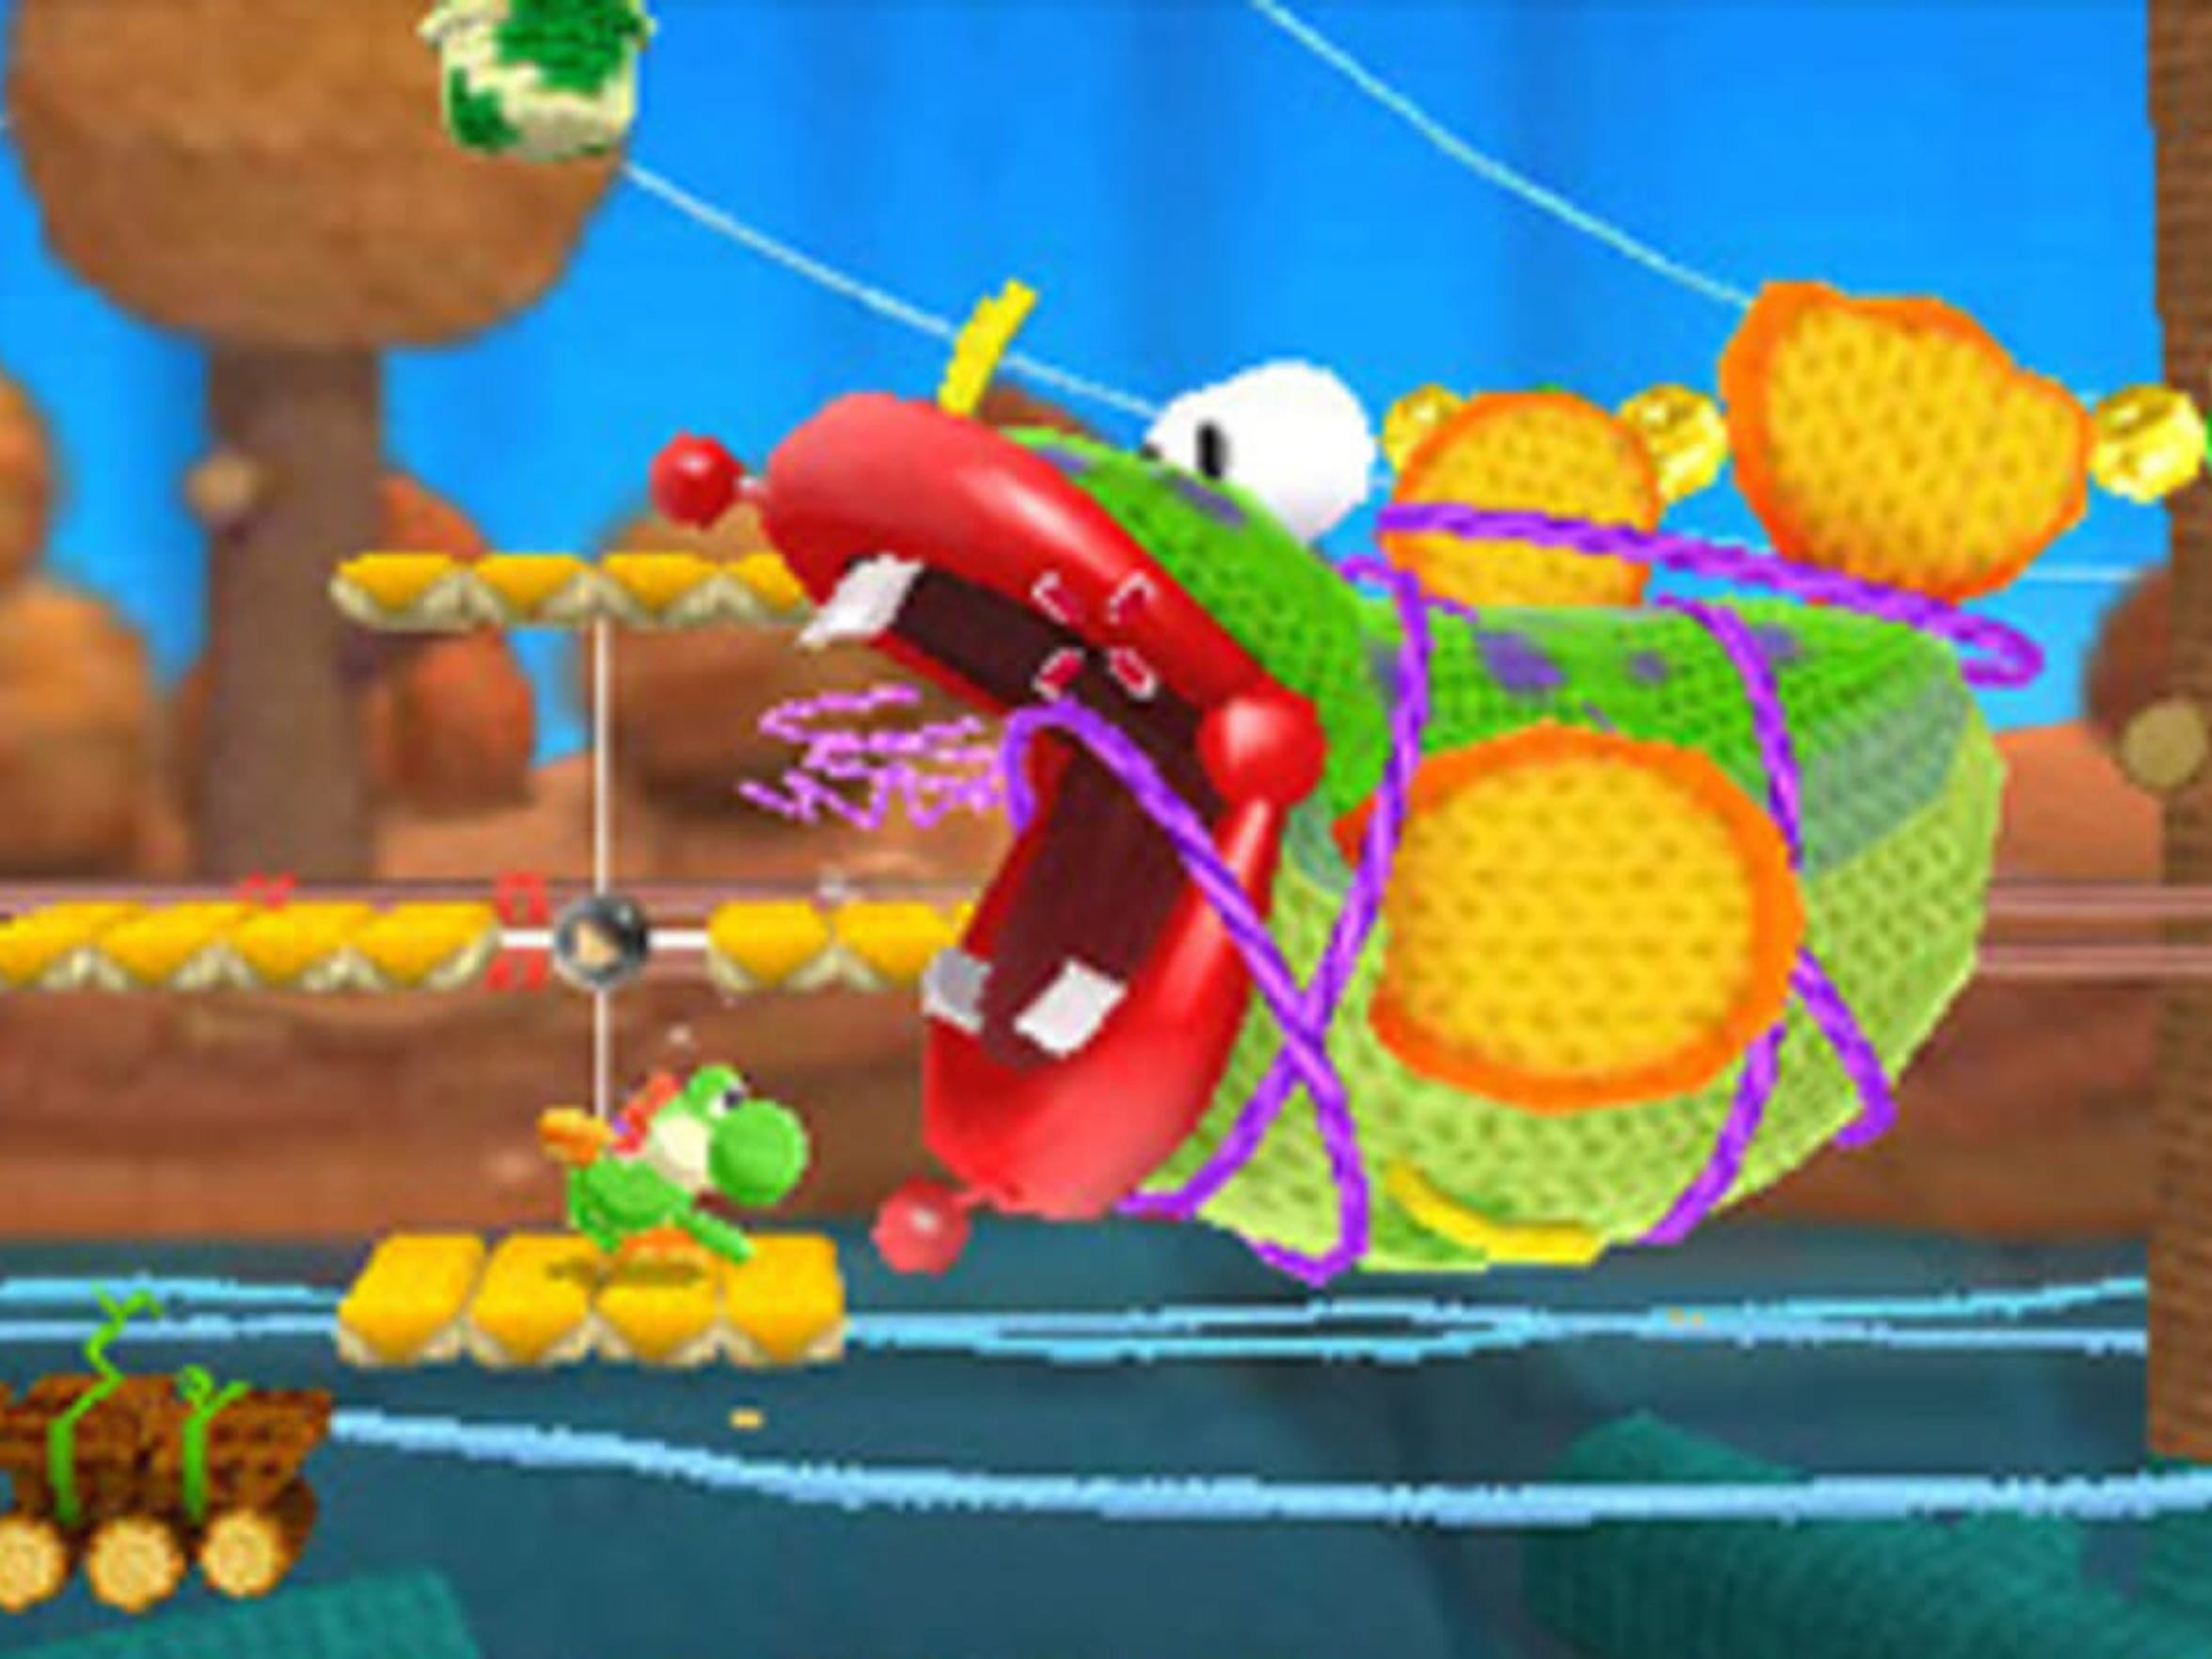 Poochy and Yoshi's Woolly World brings the yarn-style adventure to the 3DS.